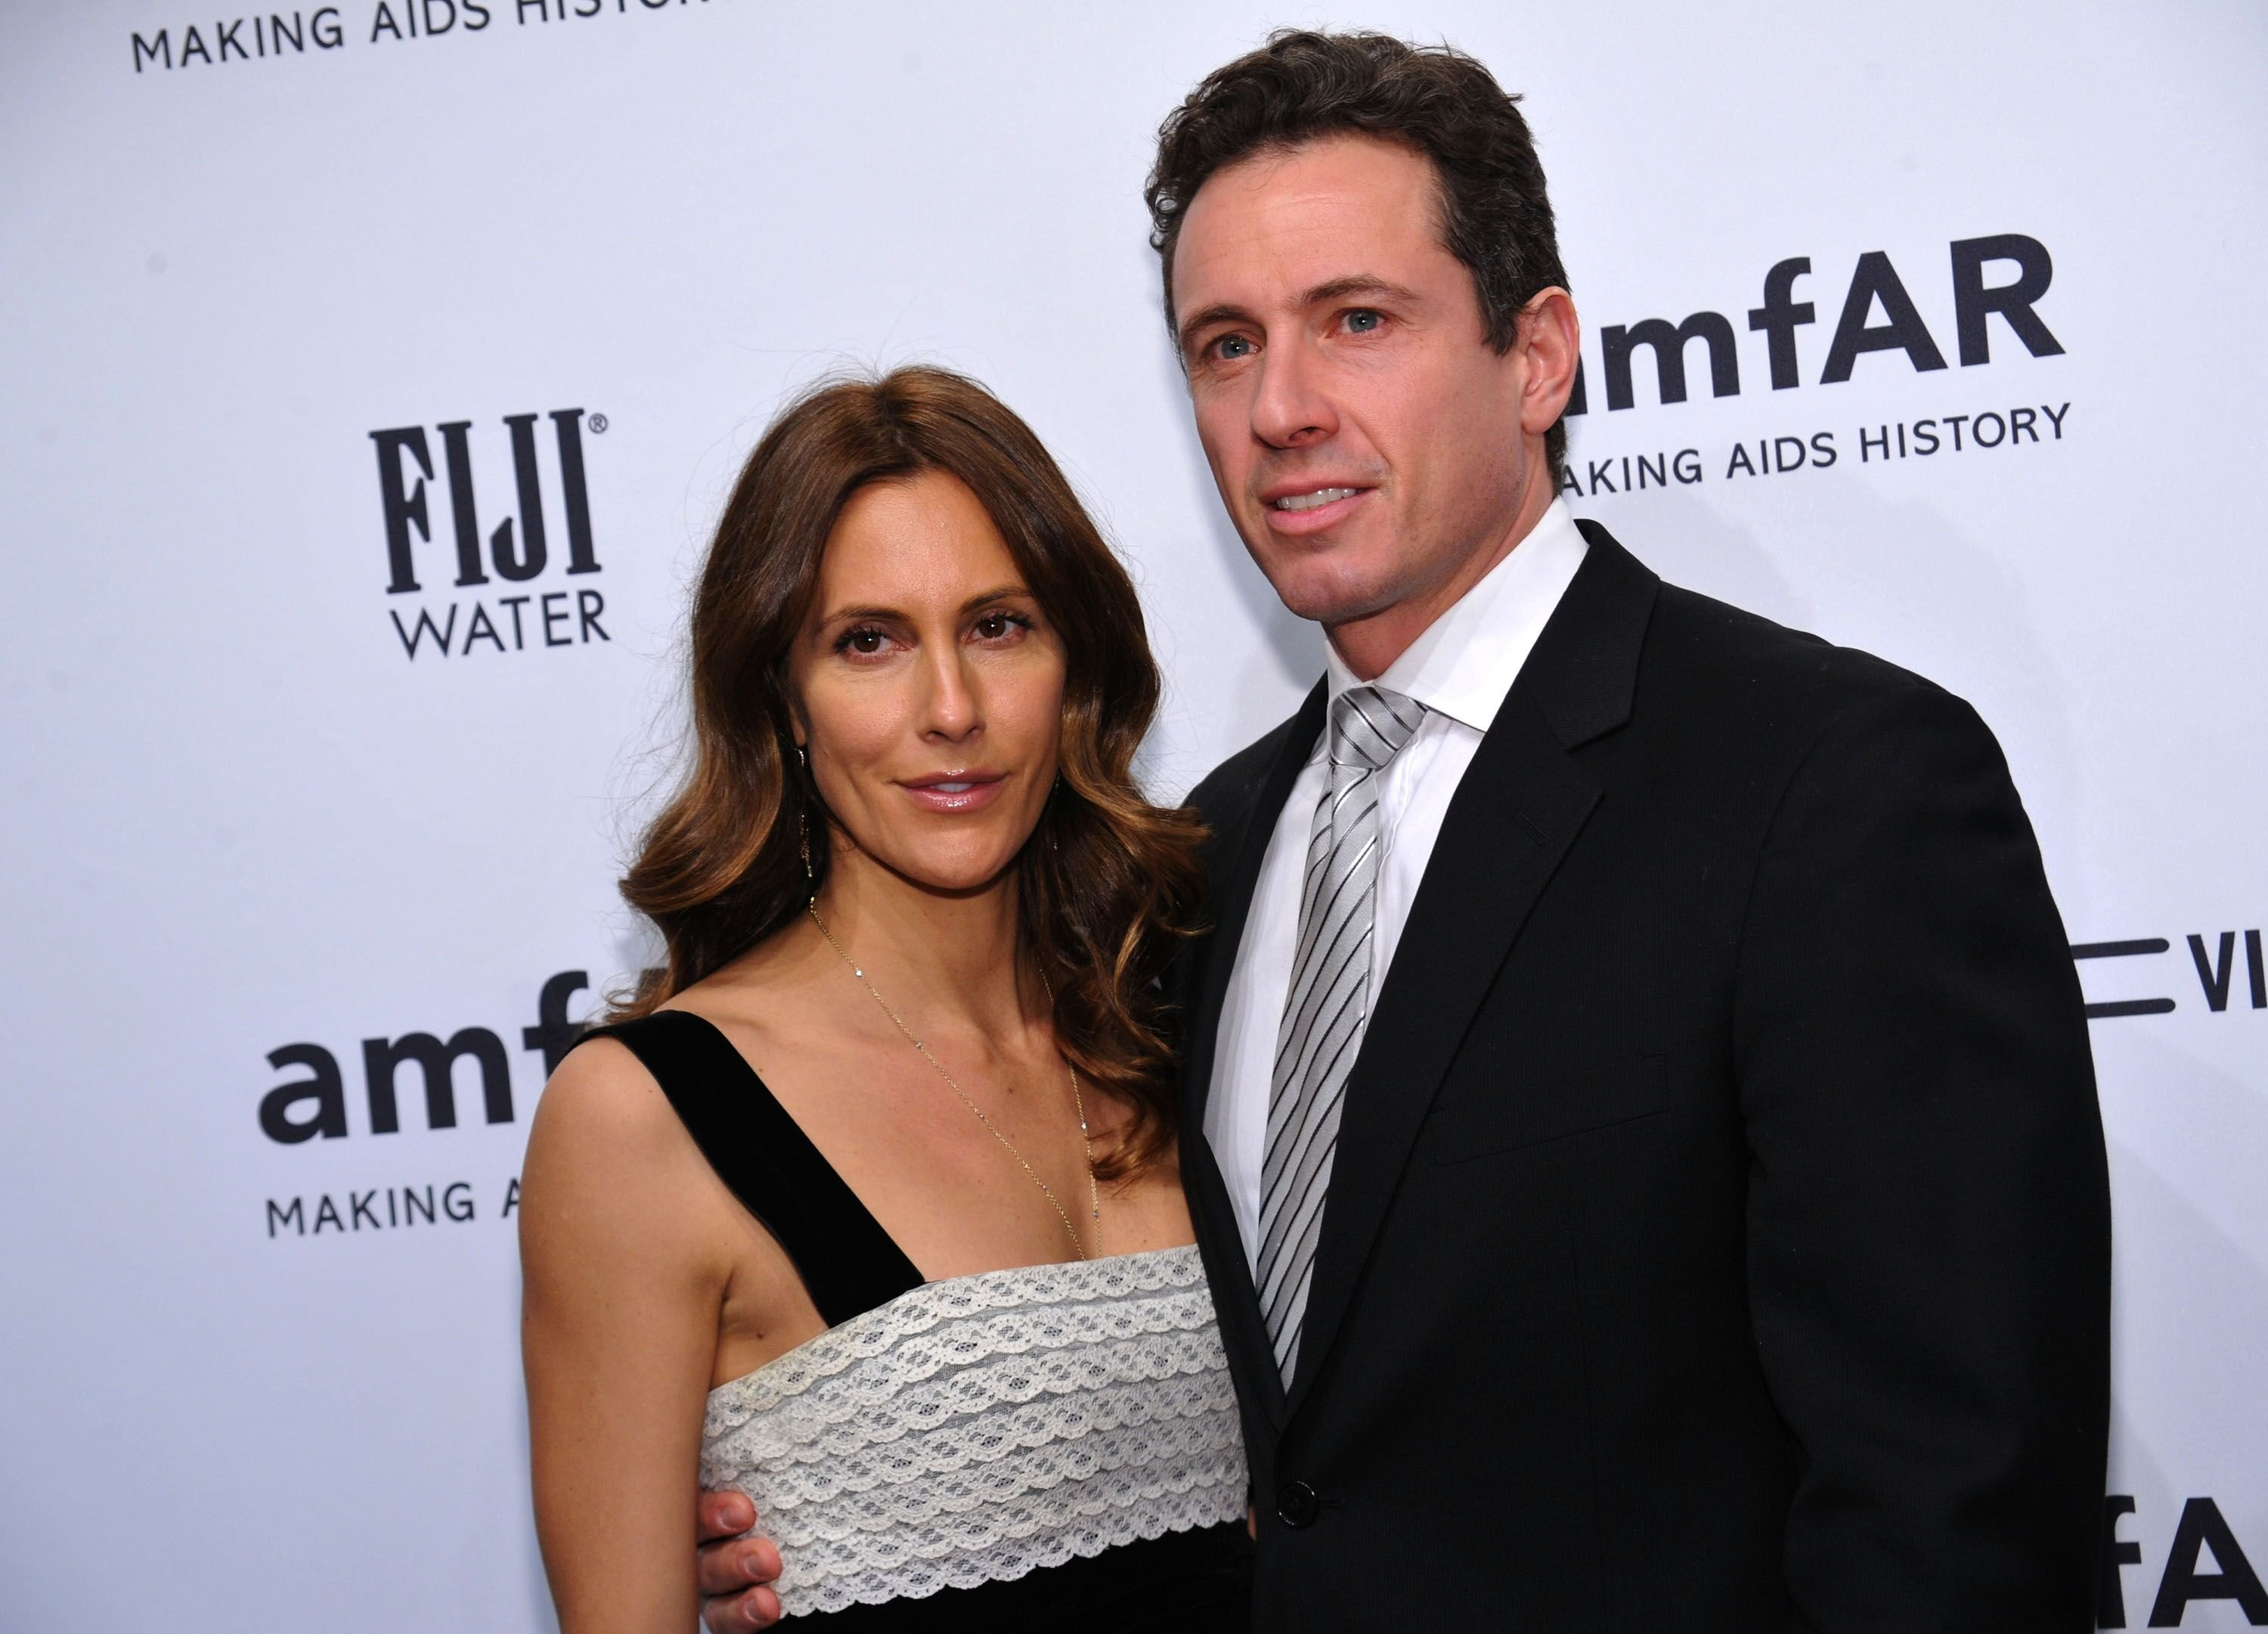 Cristina Cuomo and Chris Cuomo at the amfAR New York Gala to kick off Fall 2013 Fashion Week  | Source: Getty Images